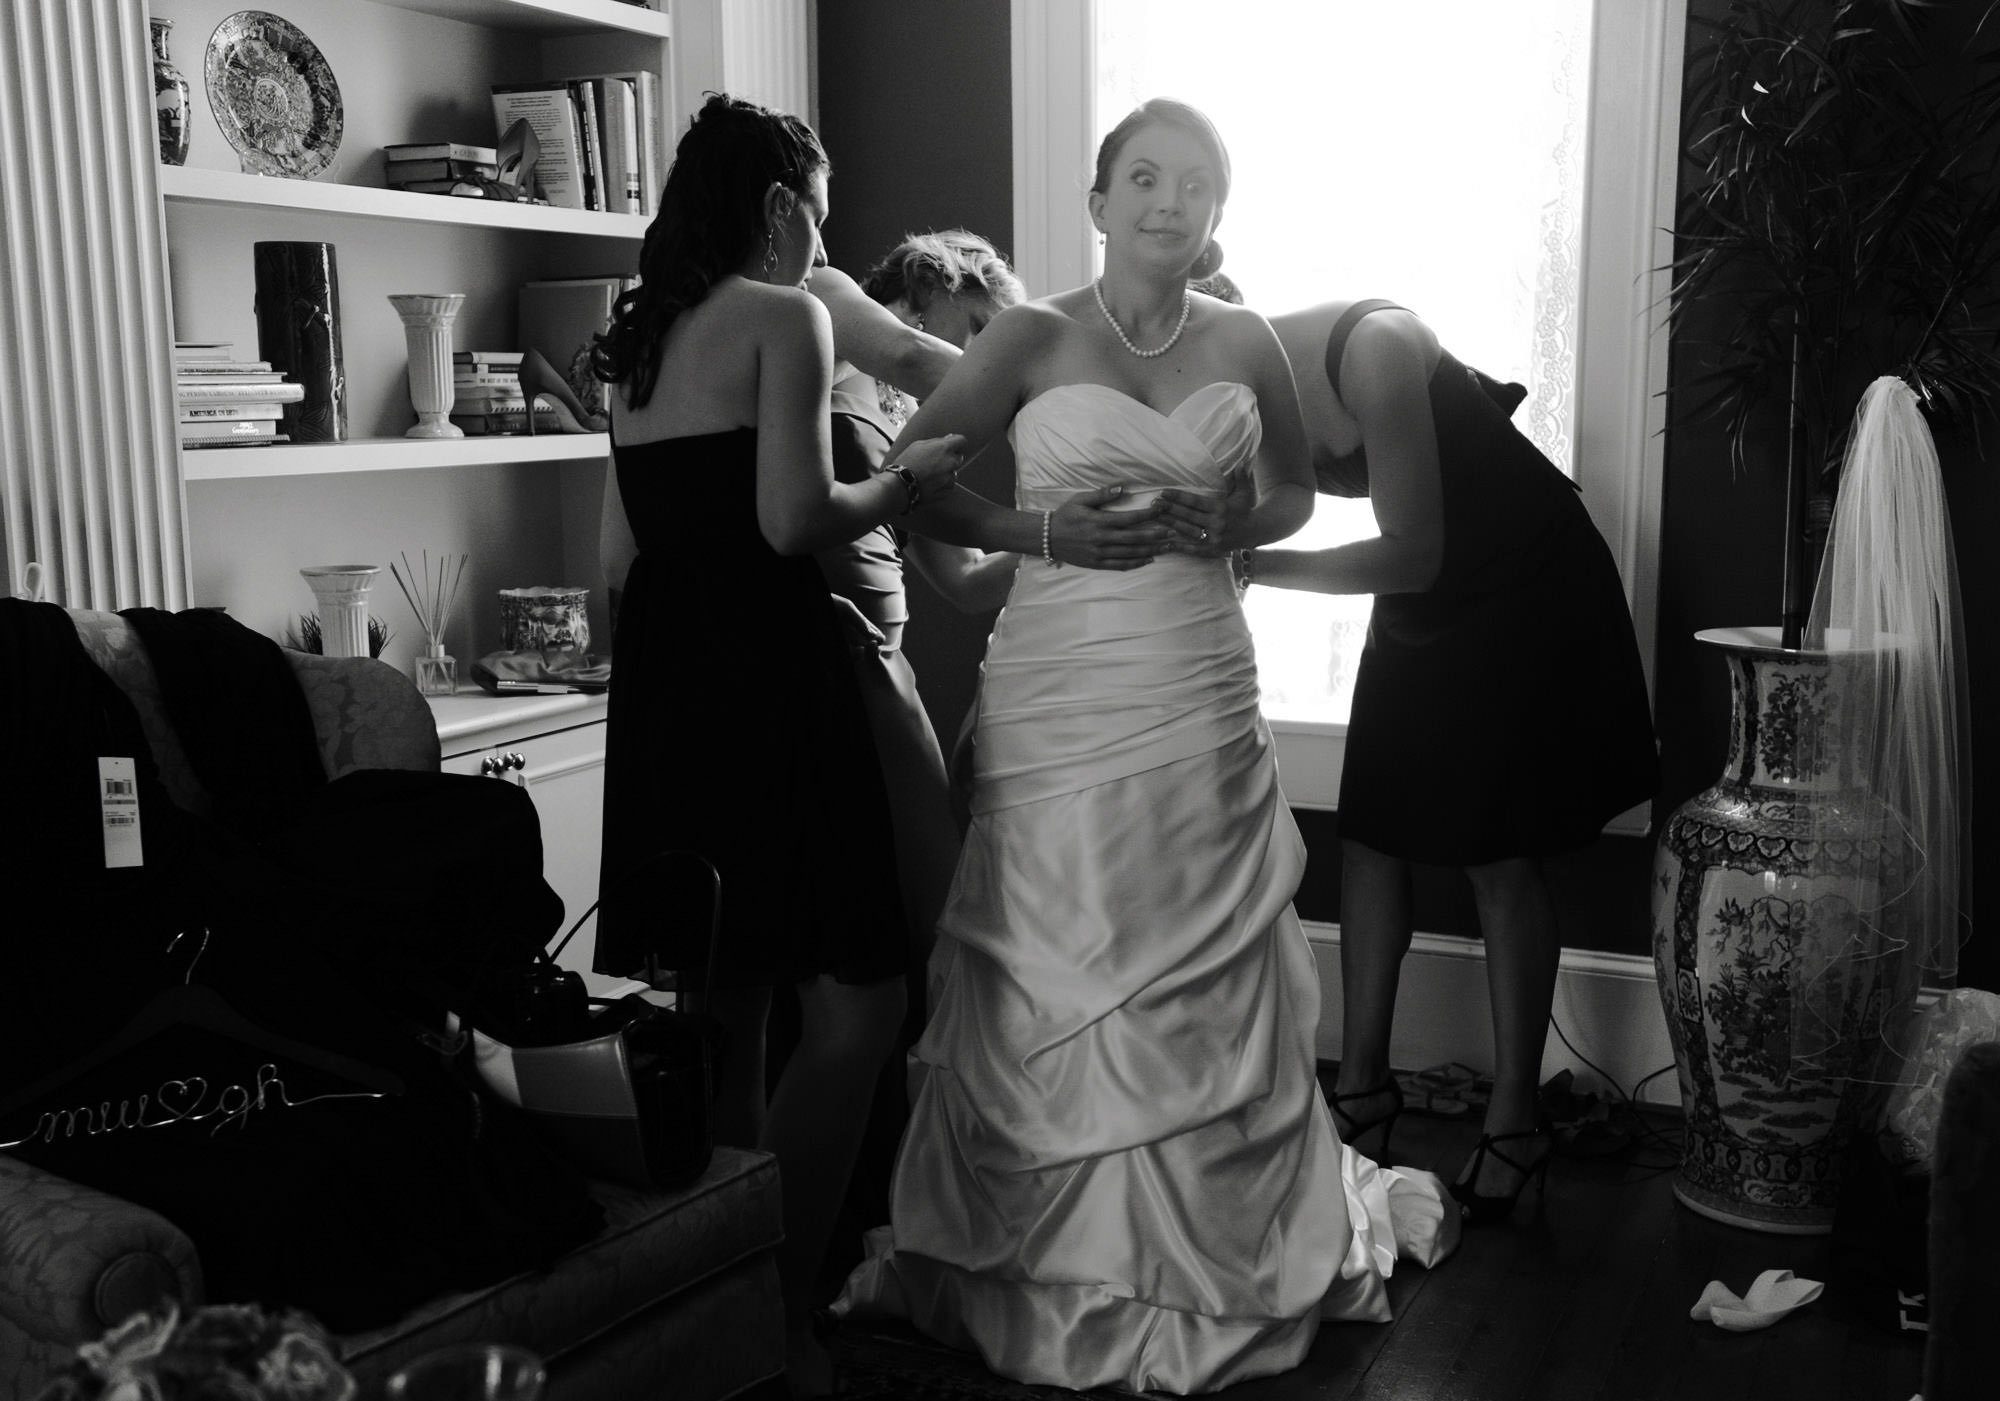 The bride puts on her wedding dress before the Whitehall Estate wedding ceremony.